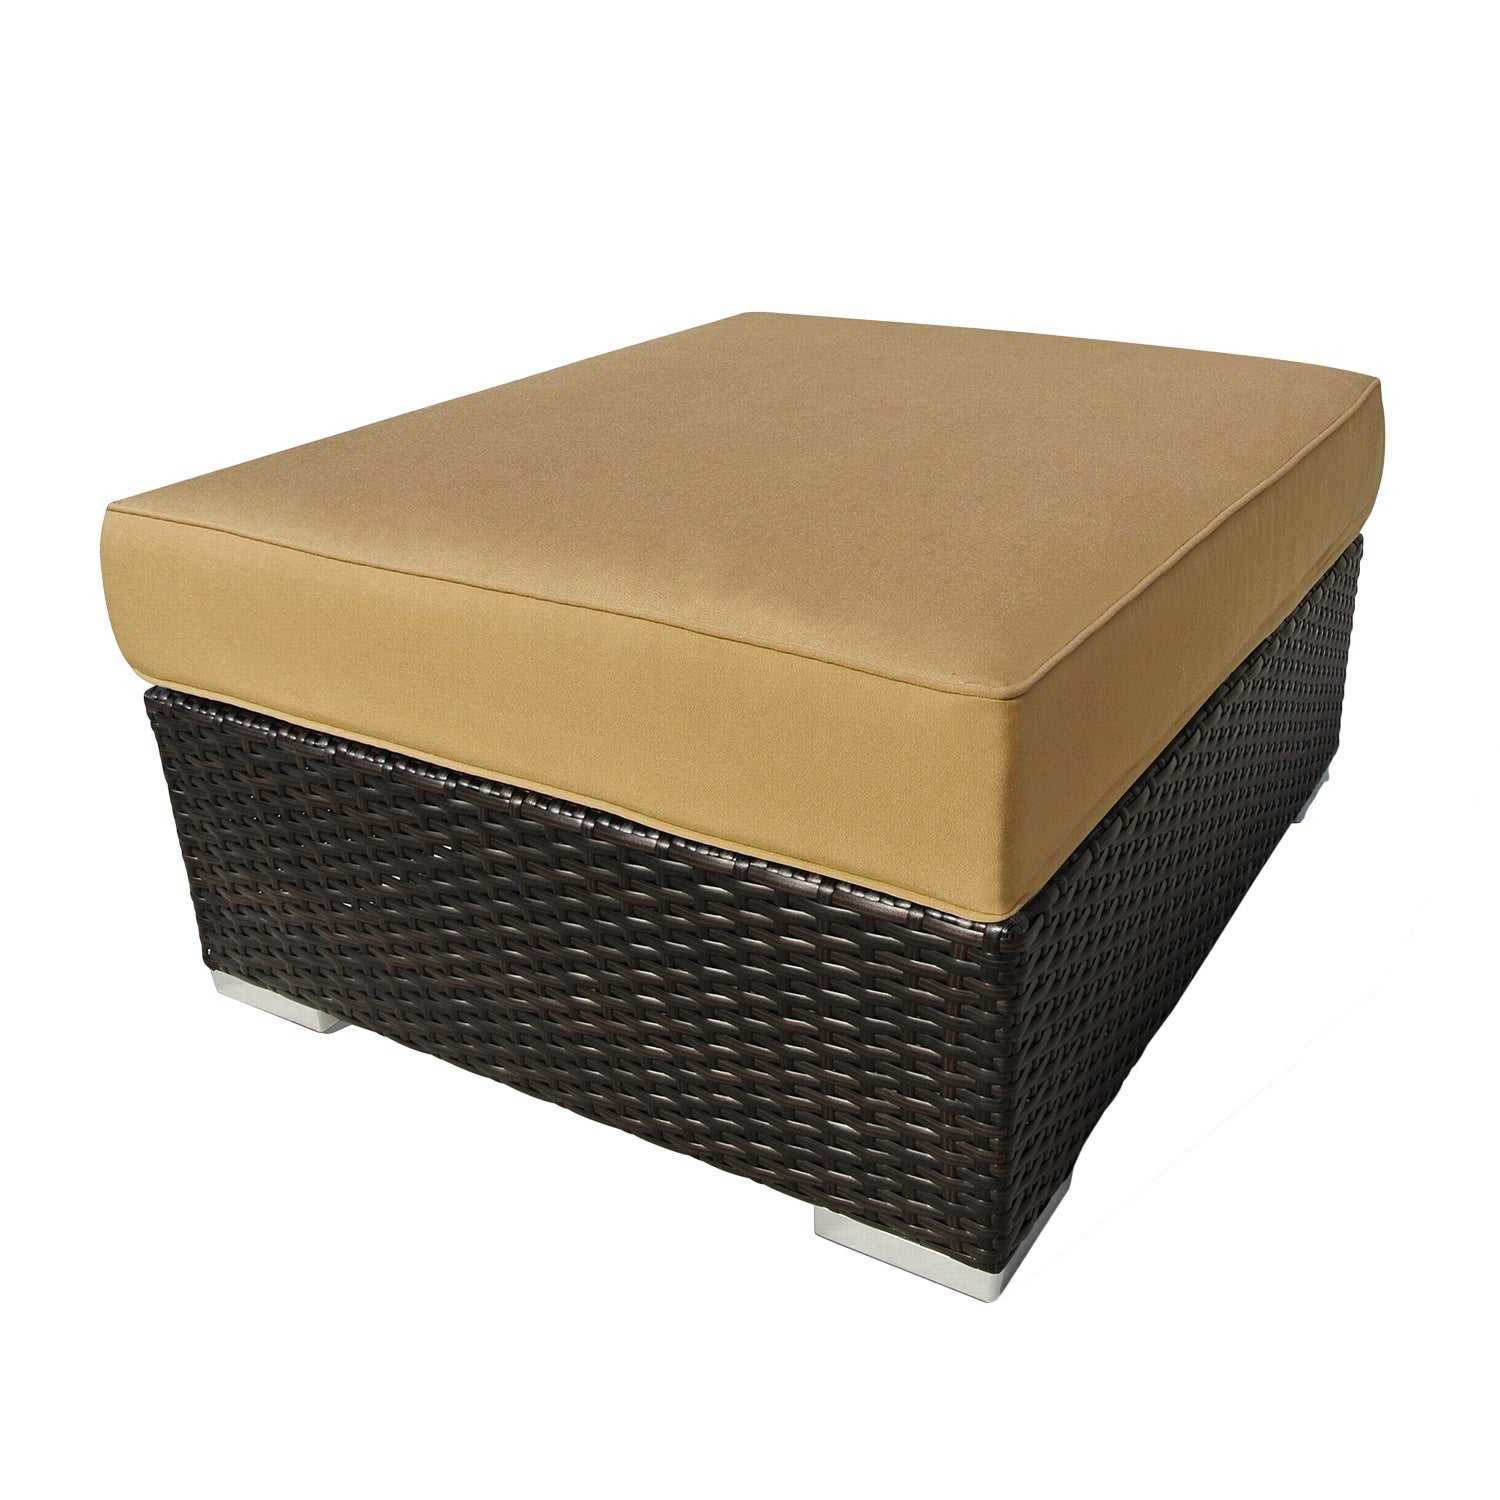 Corvus Morgan Outdoor Wicker Ottoman with Sunbrella Cushi...